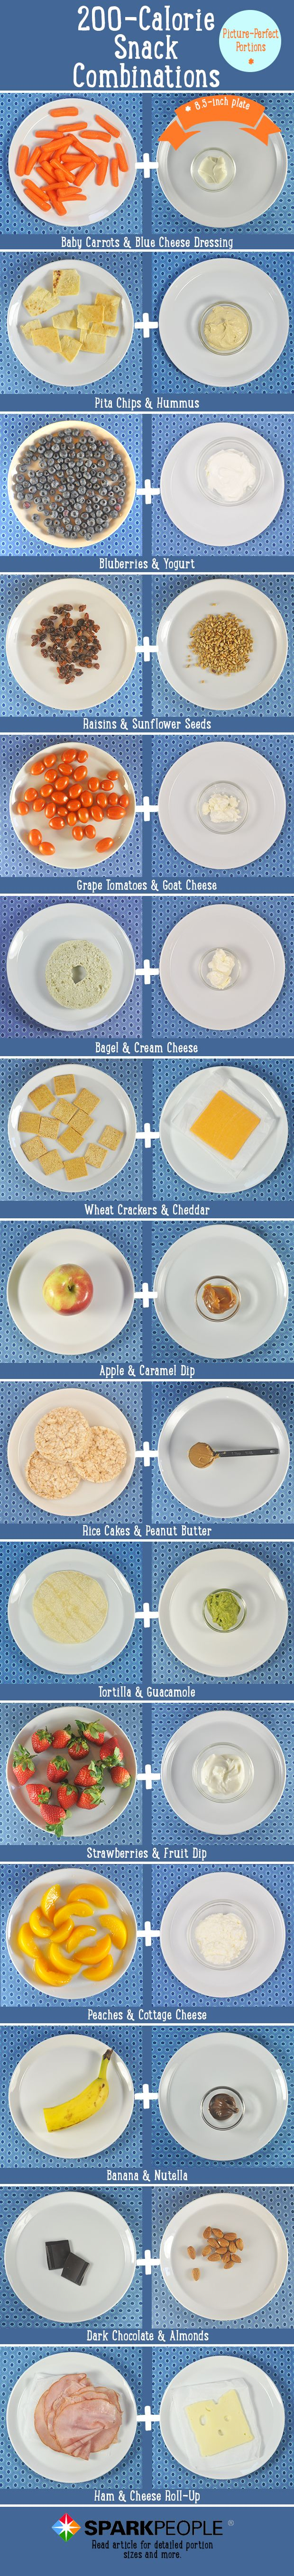 15 Pictures of 200-Calorie Healthy Snack Portions | via @SparkPeople #food #diet #nutrition